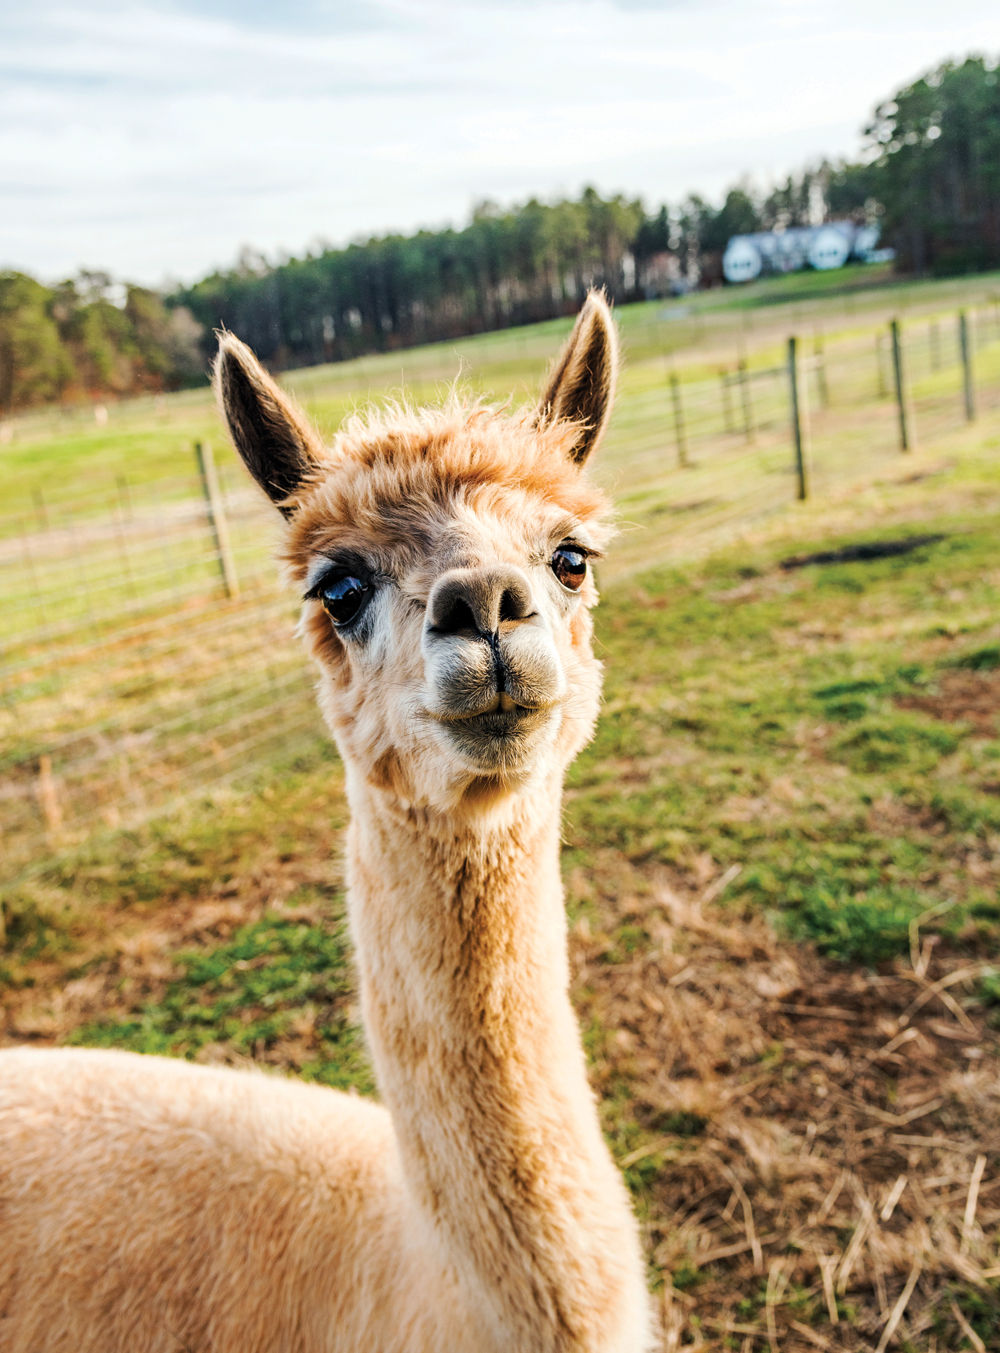 7e107ee4abc55b Alpacas, which resemble small llamas, are primarily bred for their fiber  (such as fleece). They stand around 3 feet tall and weigh 100-175 pounds.